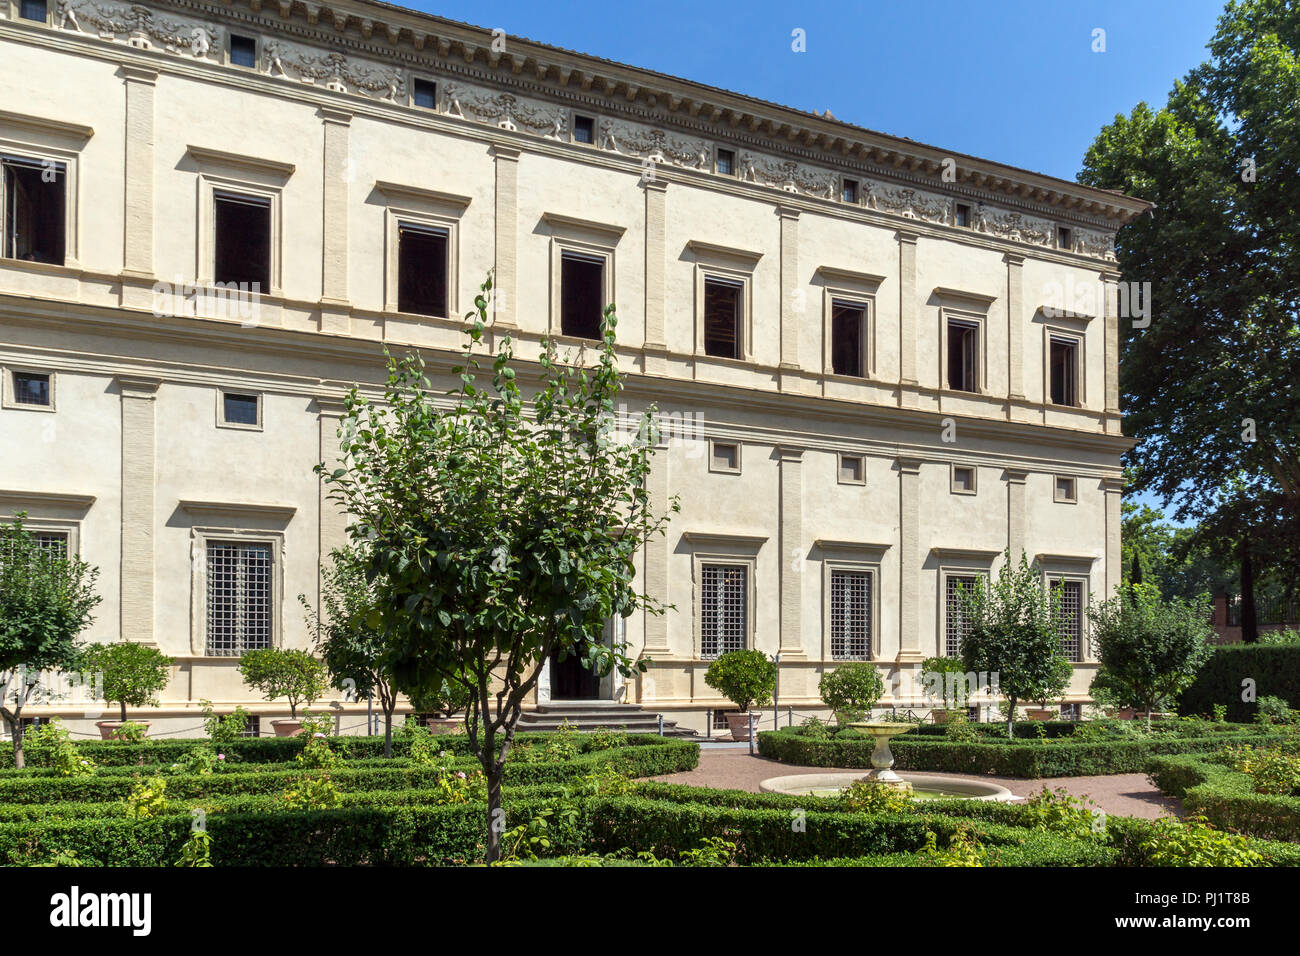 ROME, ITALY - JUNE 23, 2017: Building of Villa Farnesina in Trastavete district in city of Rome, Italy Stock Photo